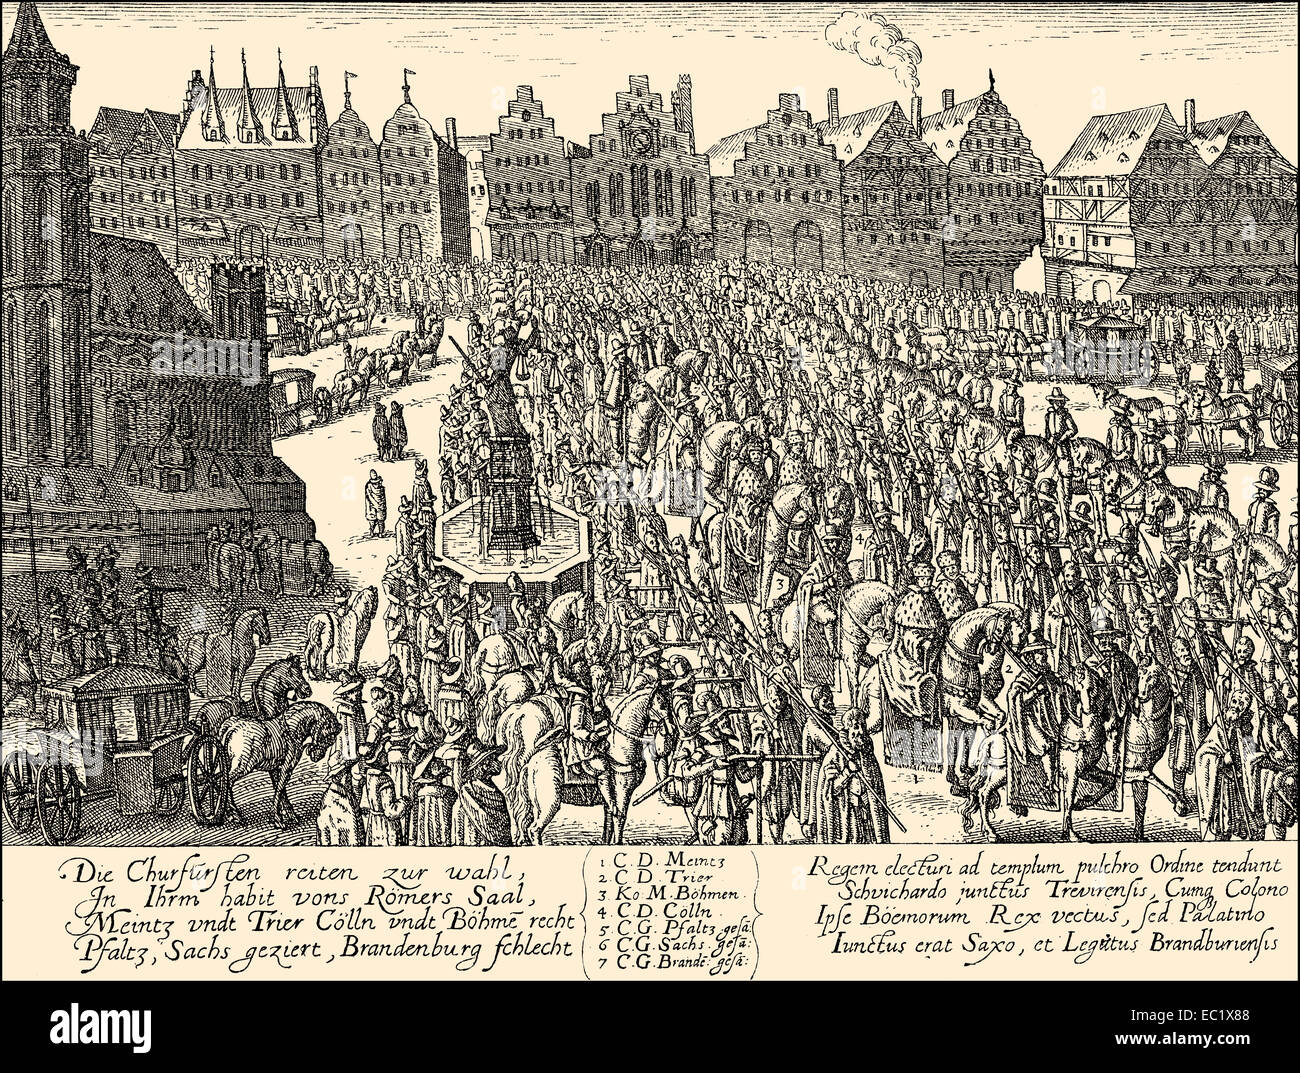 1619, The coronation of Ferdinand II, 1578 - 1637, Holy Roman Emperor,